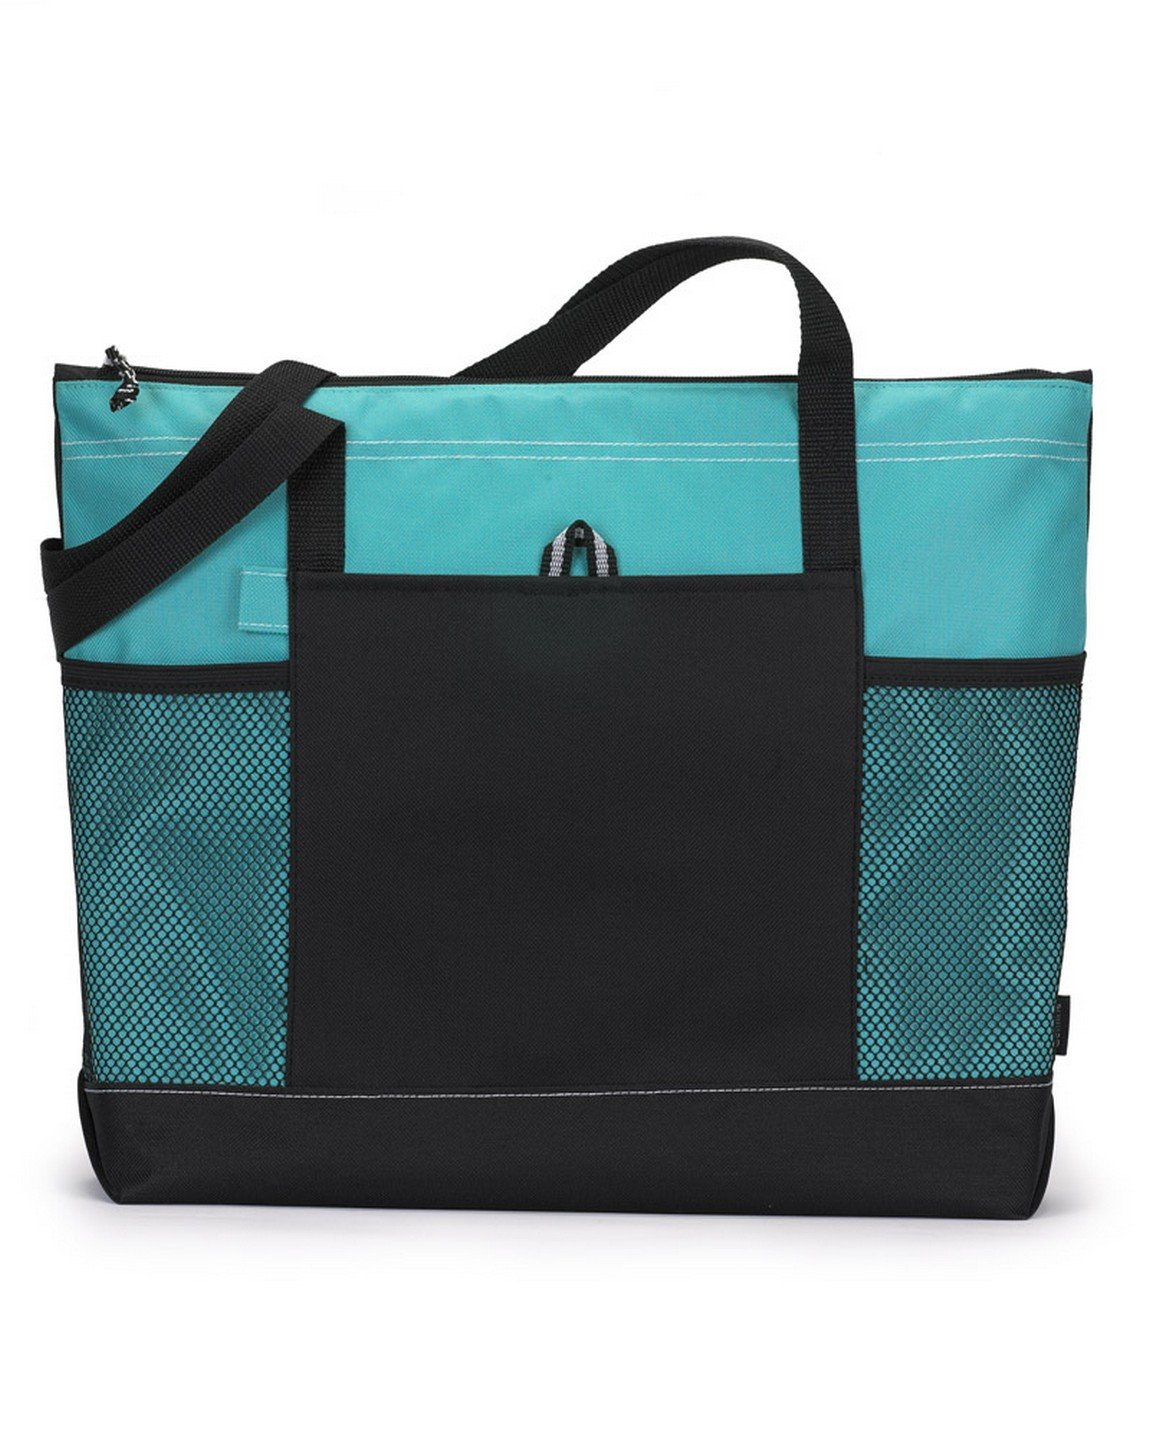 Bodek And Rhodes 80279480 1100 Gemline Select Zippered Tote Turquoise - One by Gemline (Image #1)